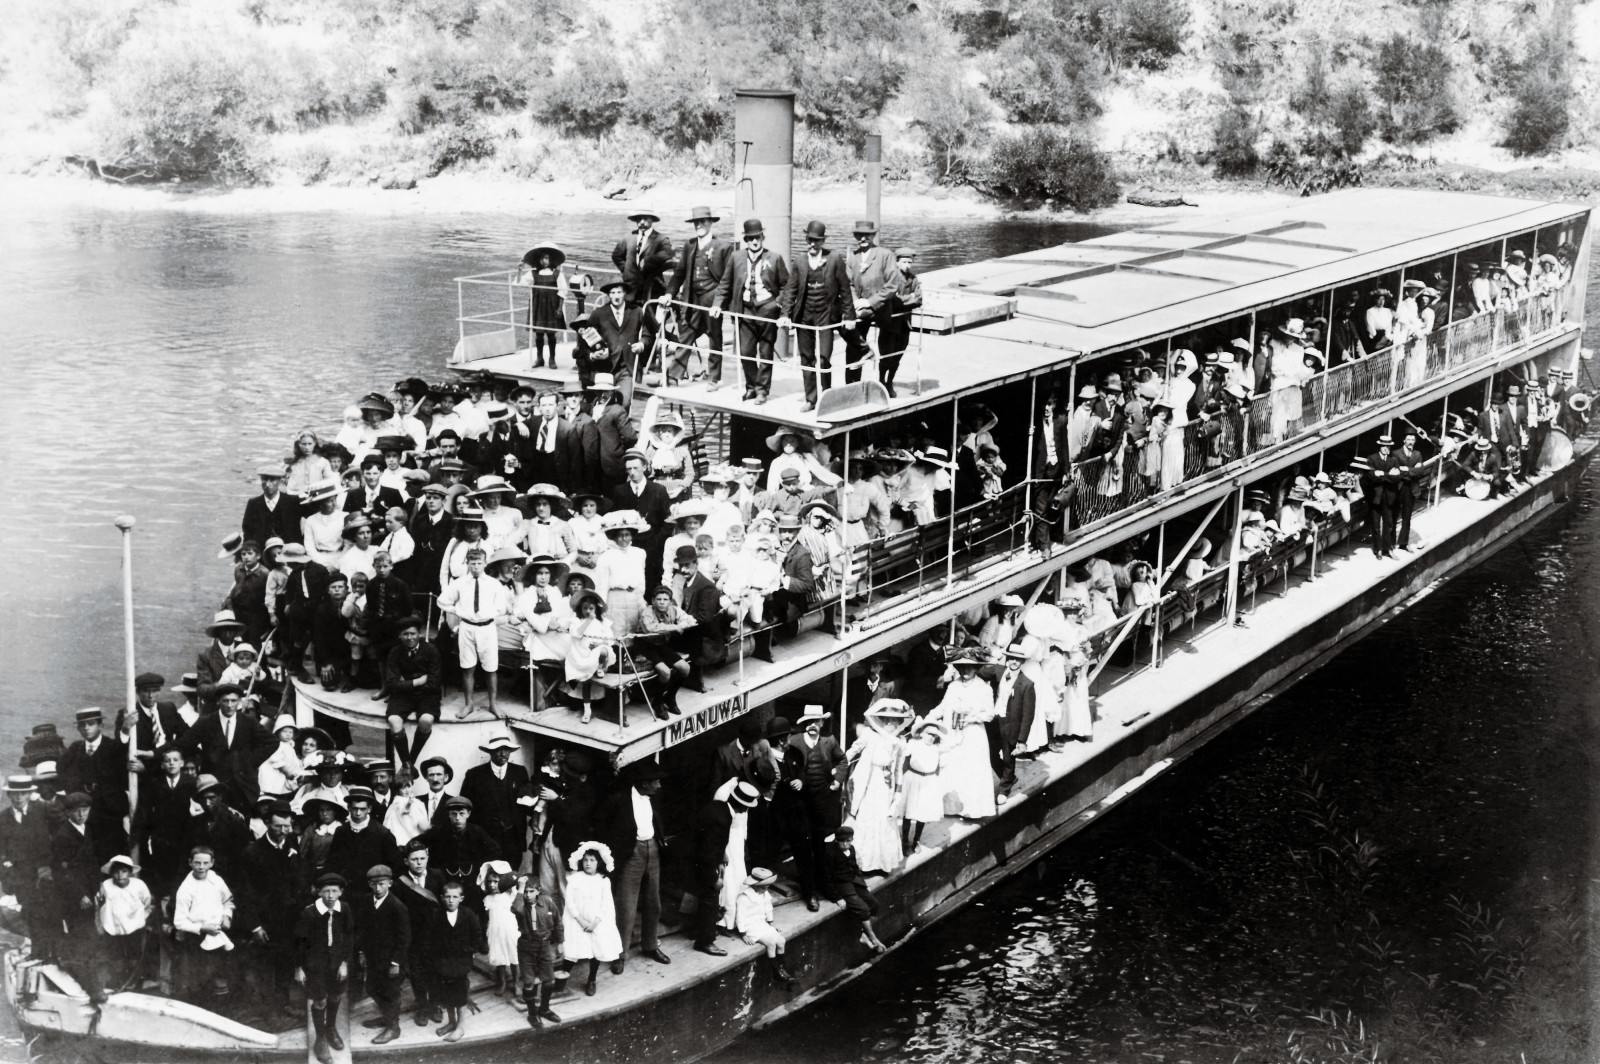 Flagship of the Hatrick fleet and undisputed Queen of the River was the double-decker stern-wheeler Manuwai. At 104 feet long, her lack of manoeuvrability confined her to the lower reaches, where she made day trips from Whanganui and proved a popular choice with Sunday picnic parties, such as this one photographed in about 1910. Manuwai only once ventured as far upstream as Pipiriki, when the hotel there burnt down in 1909 and she provided emergency accommodation while the new Pipiriki House was built.